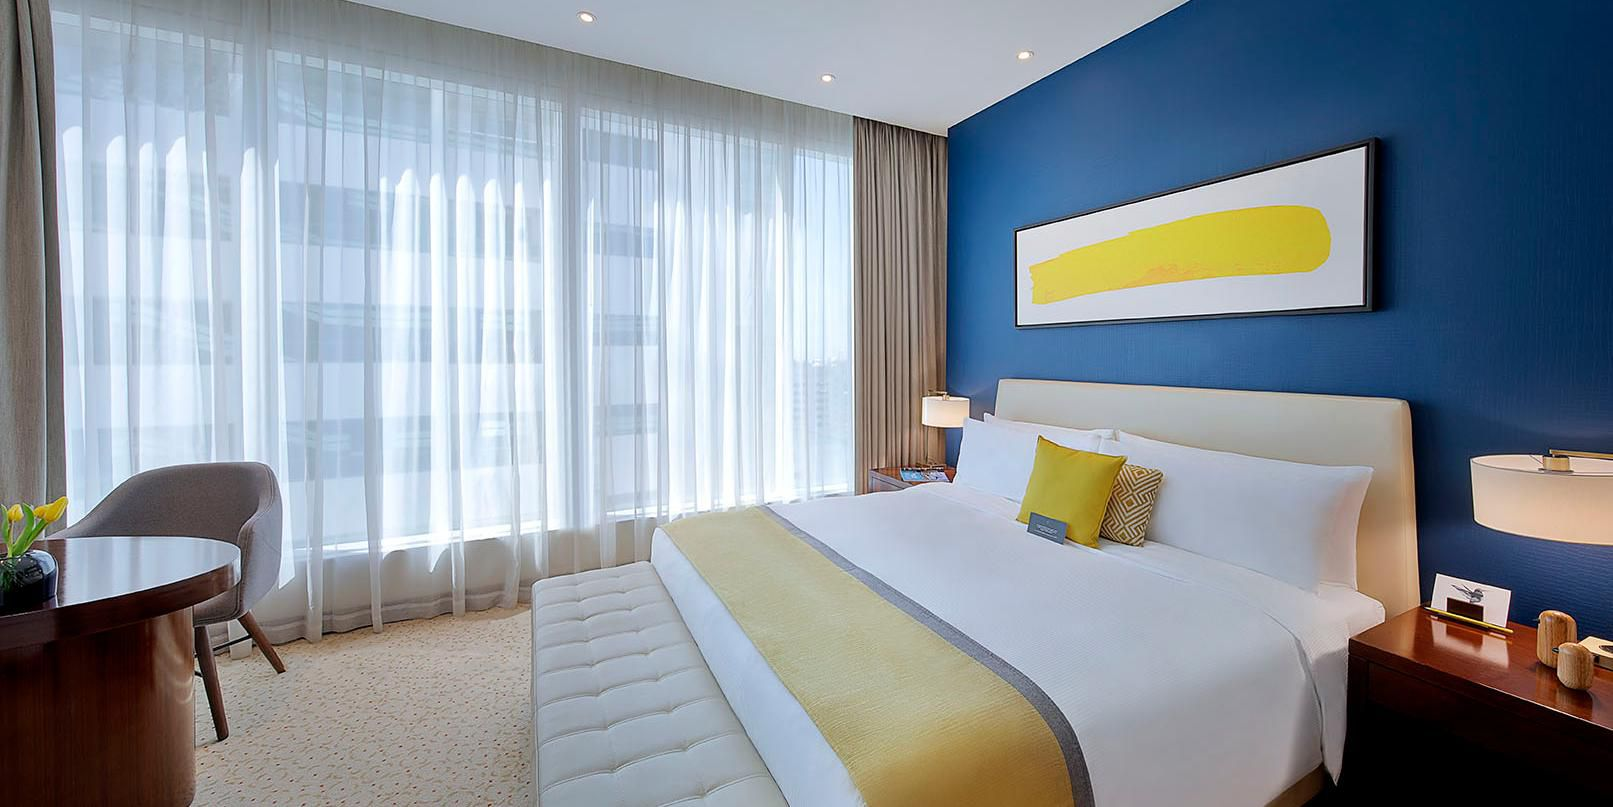 One Bedroom Suite, with city views of Sheikh Zayed Road